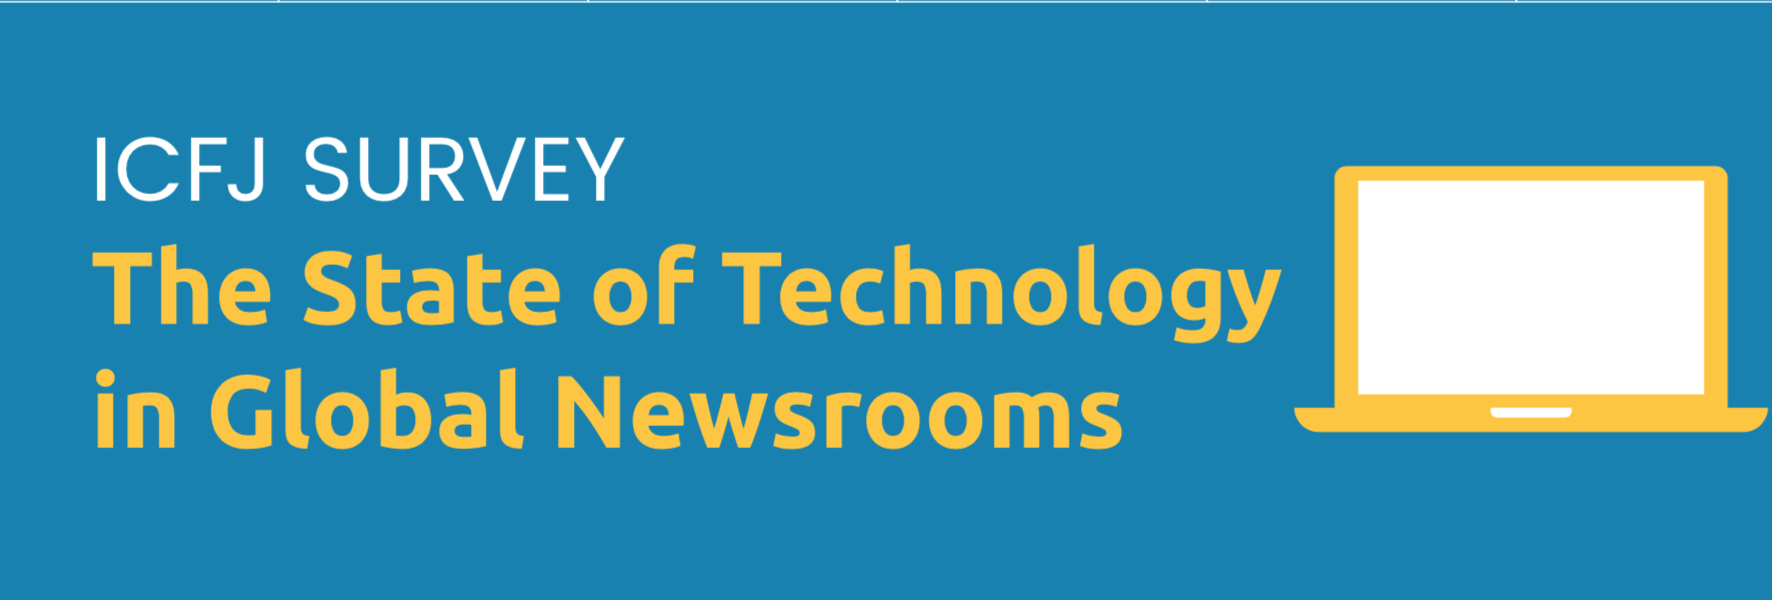 The State of Technology in Global Newsrooms